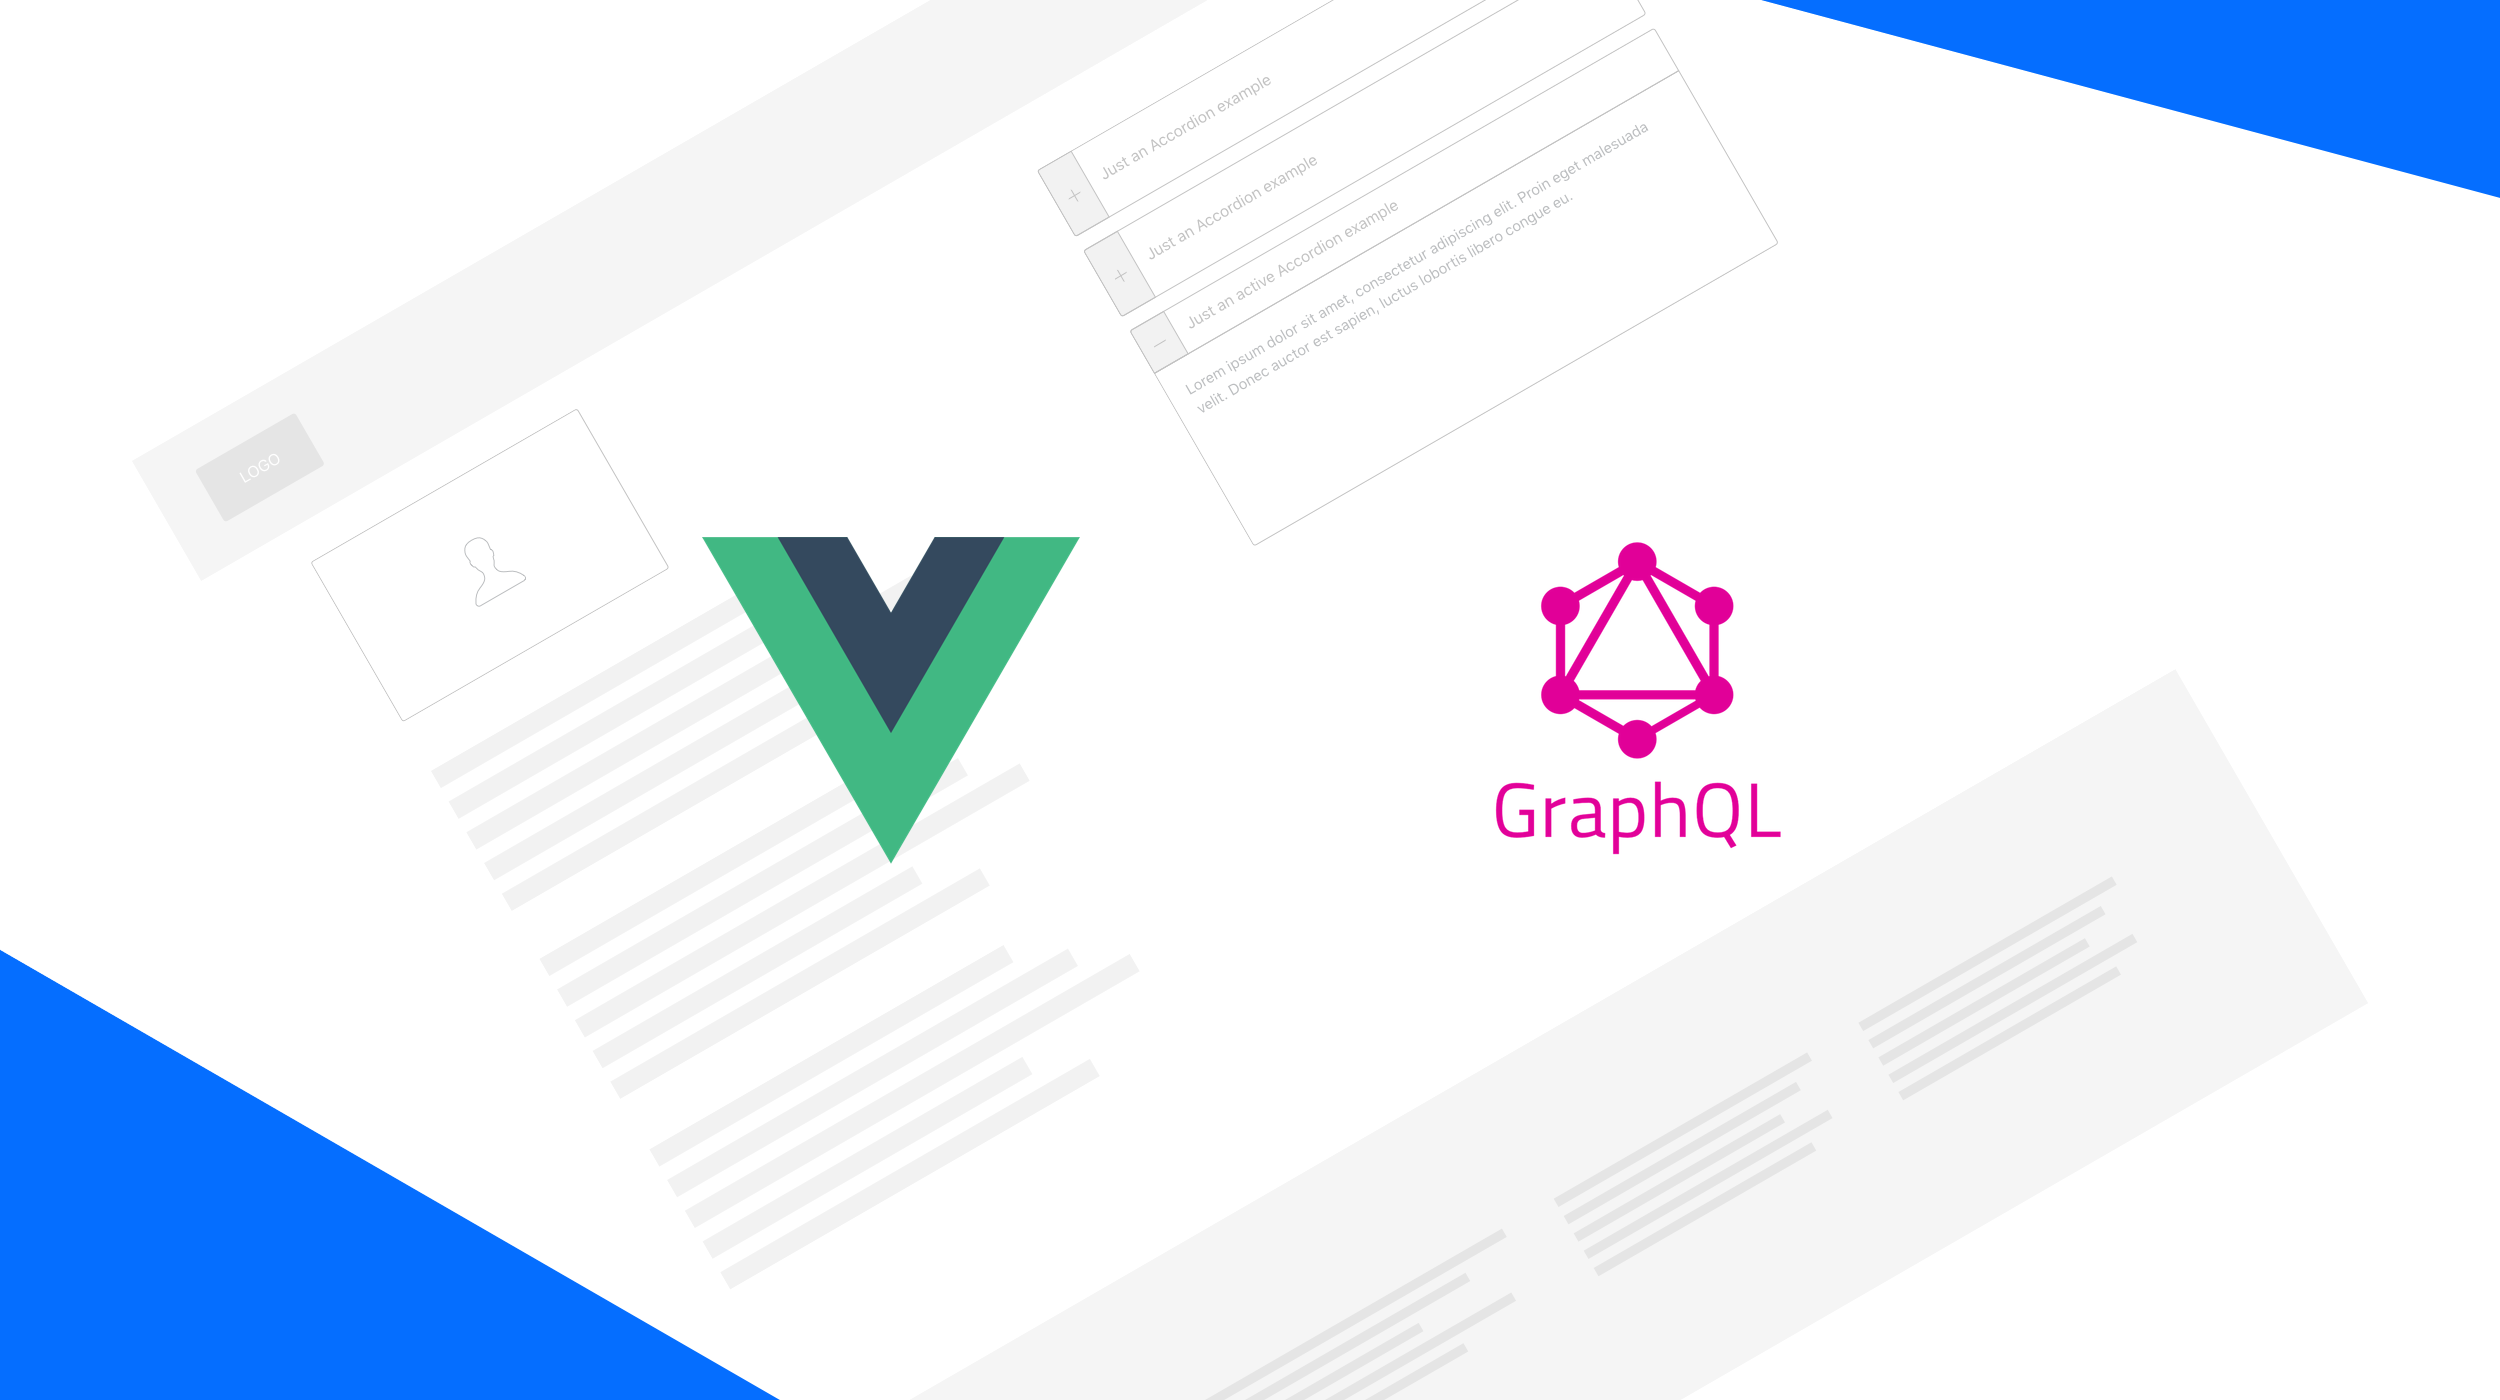 Quickly develop static websites with VueJS, a headless CMS and GraphQL